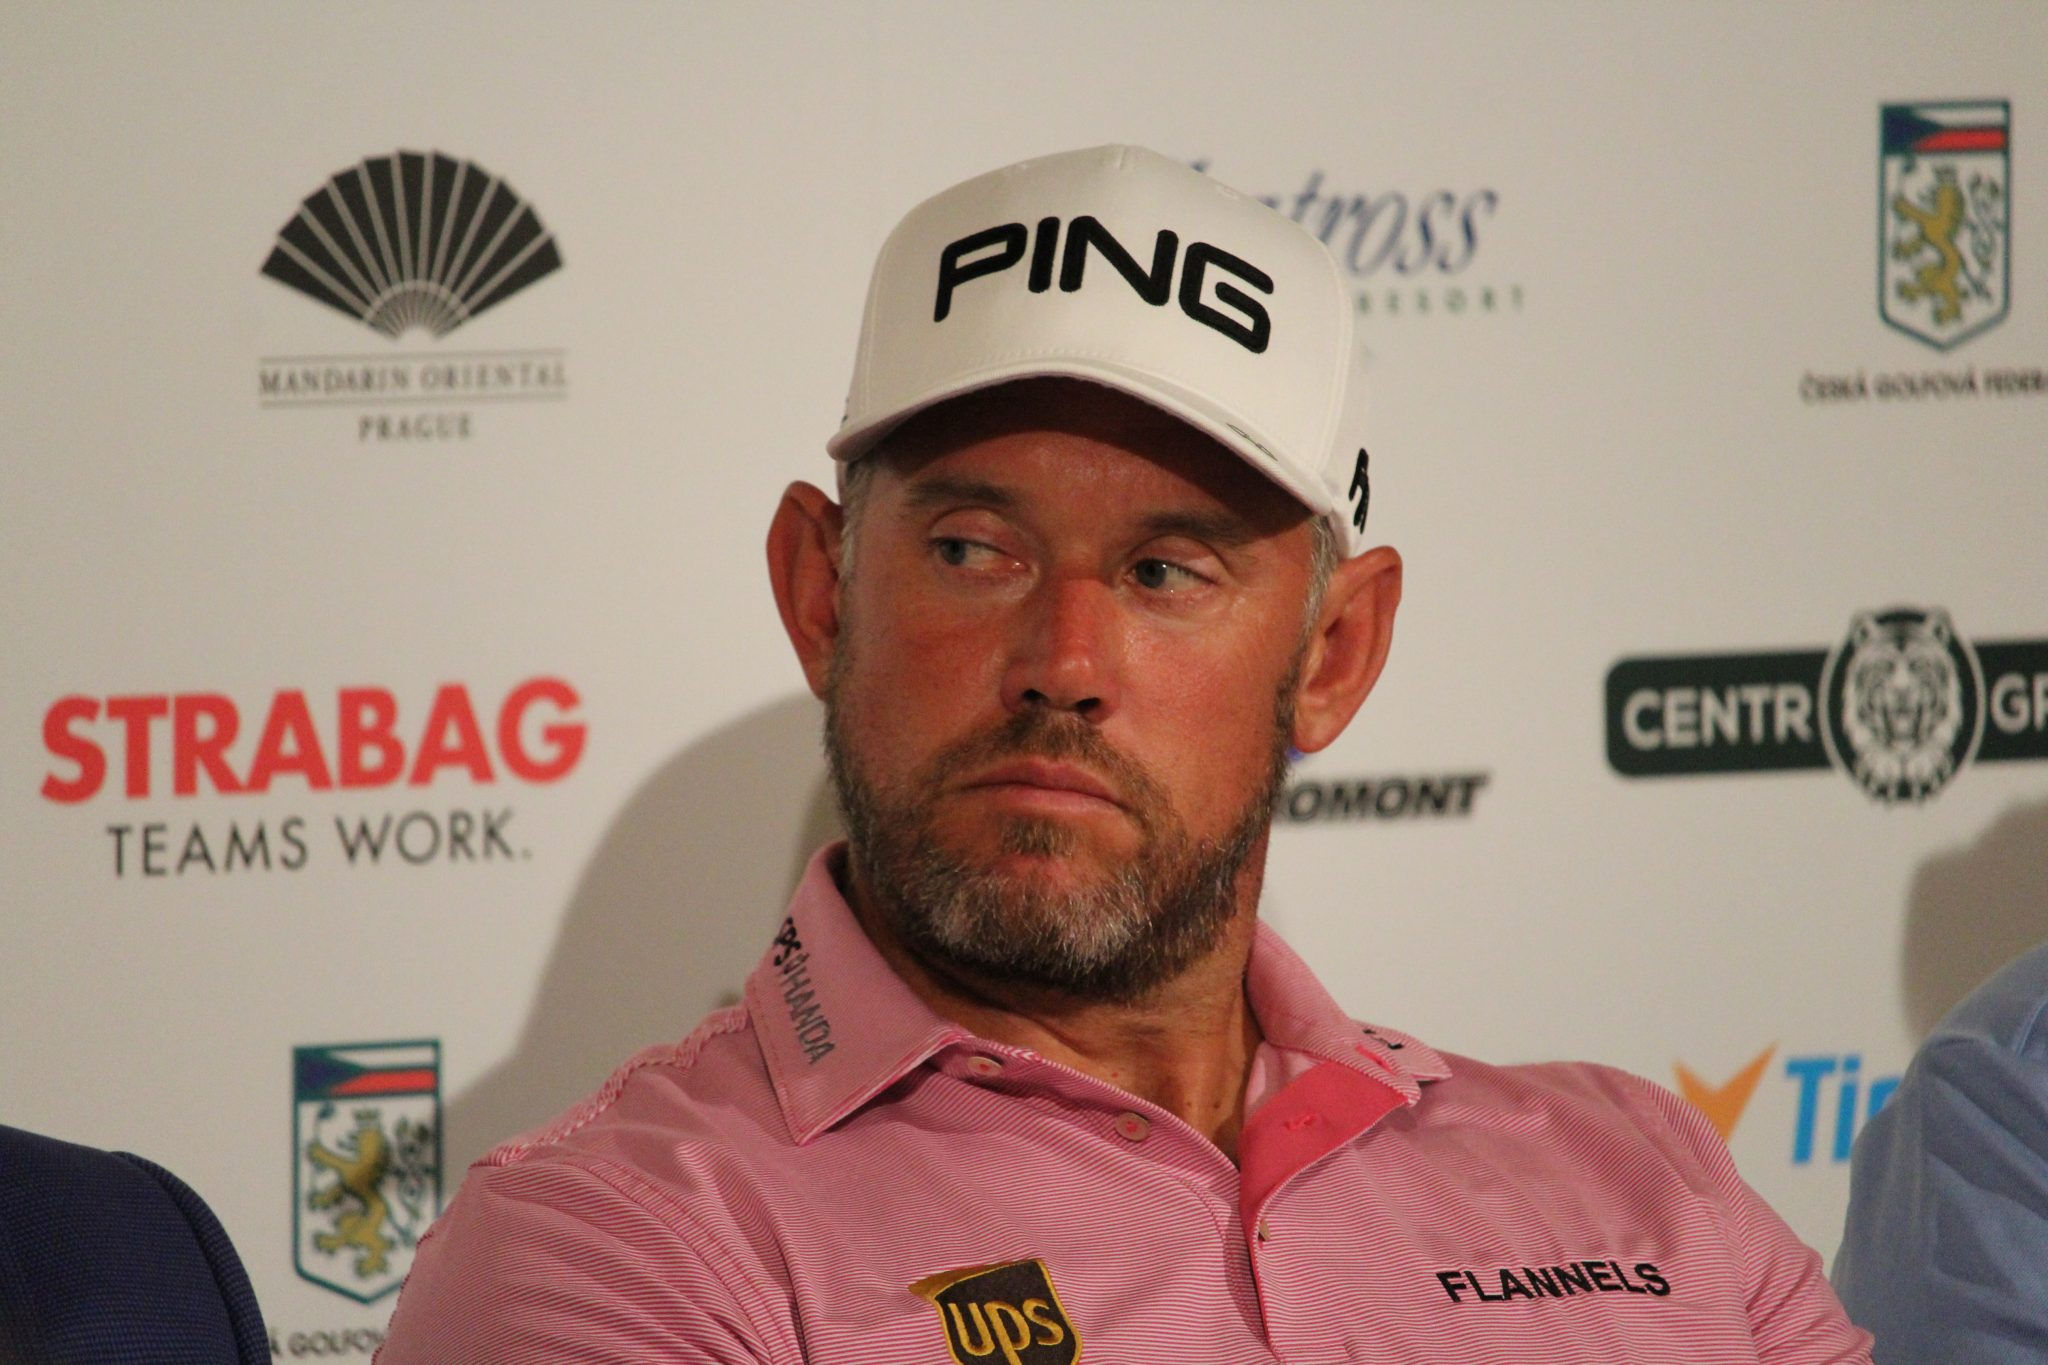 Lee Westwood press conference